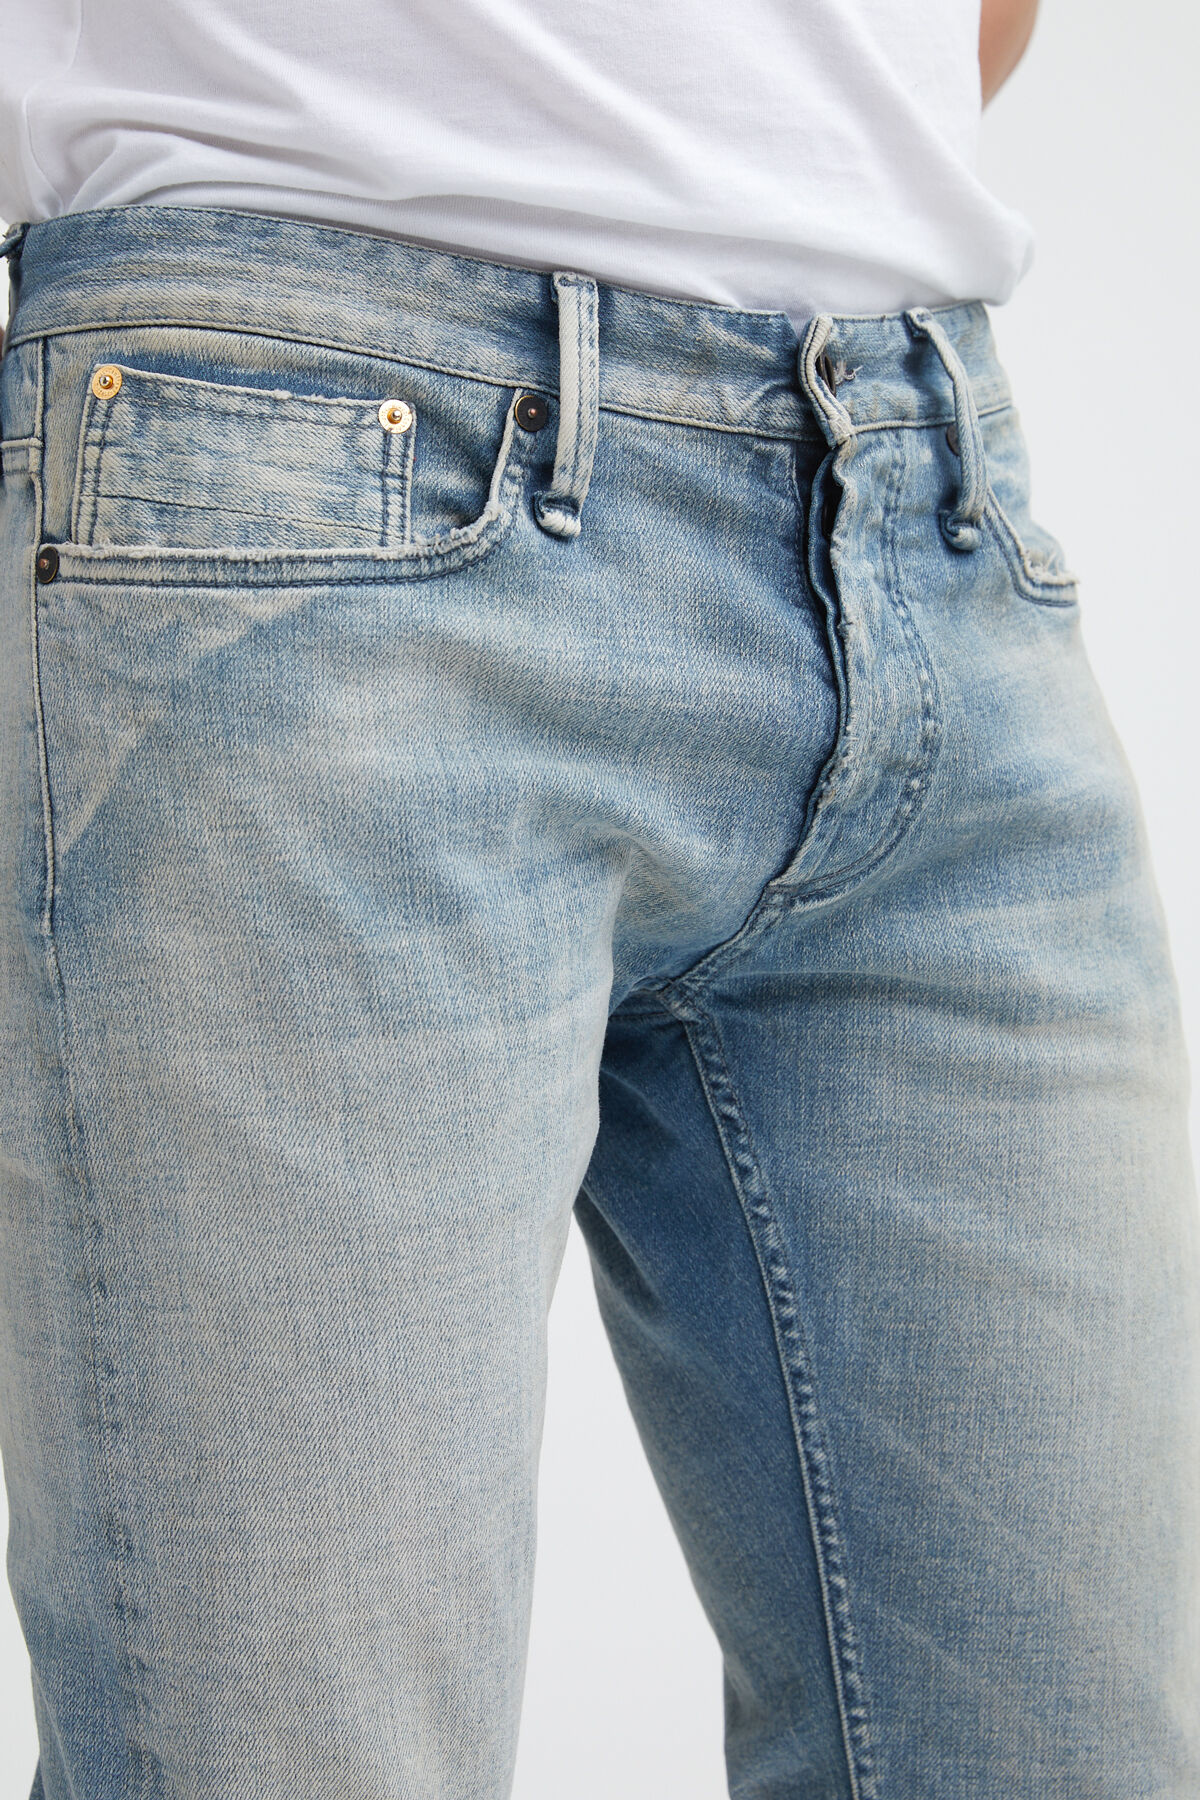 RAZOR Washed Selvedge Denim - Slim Fit